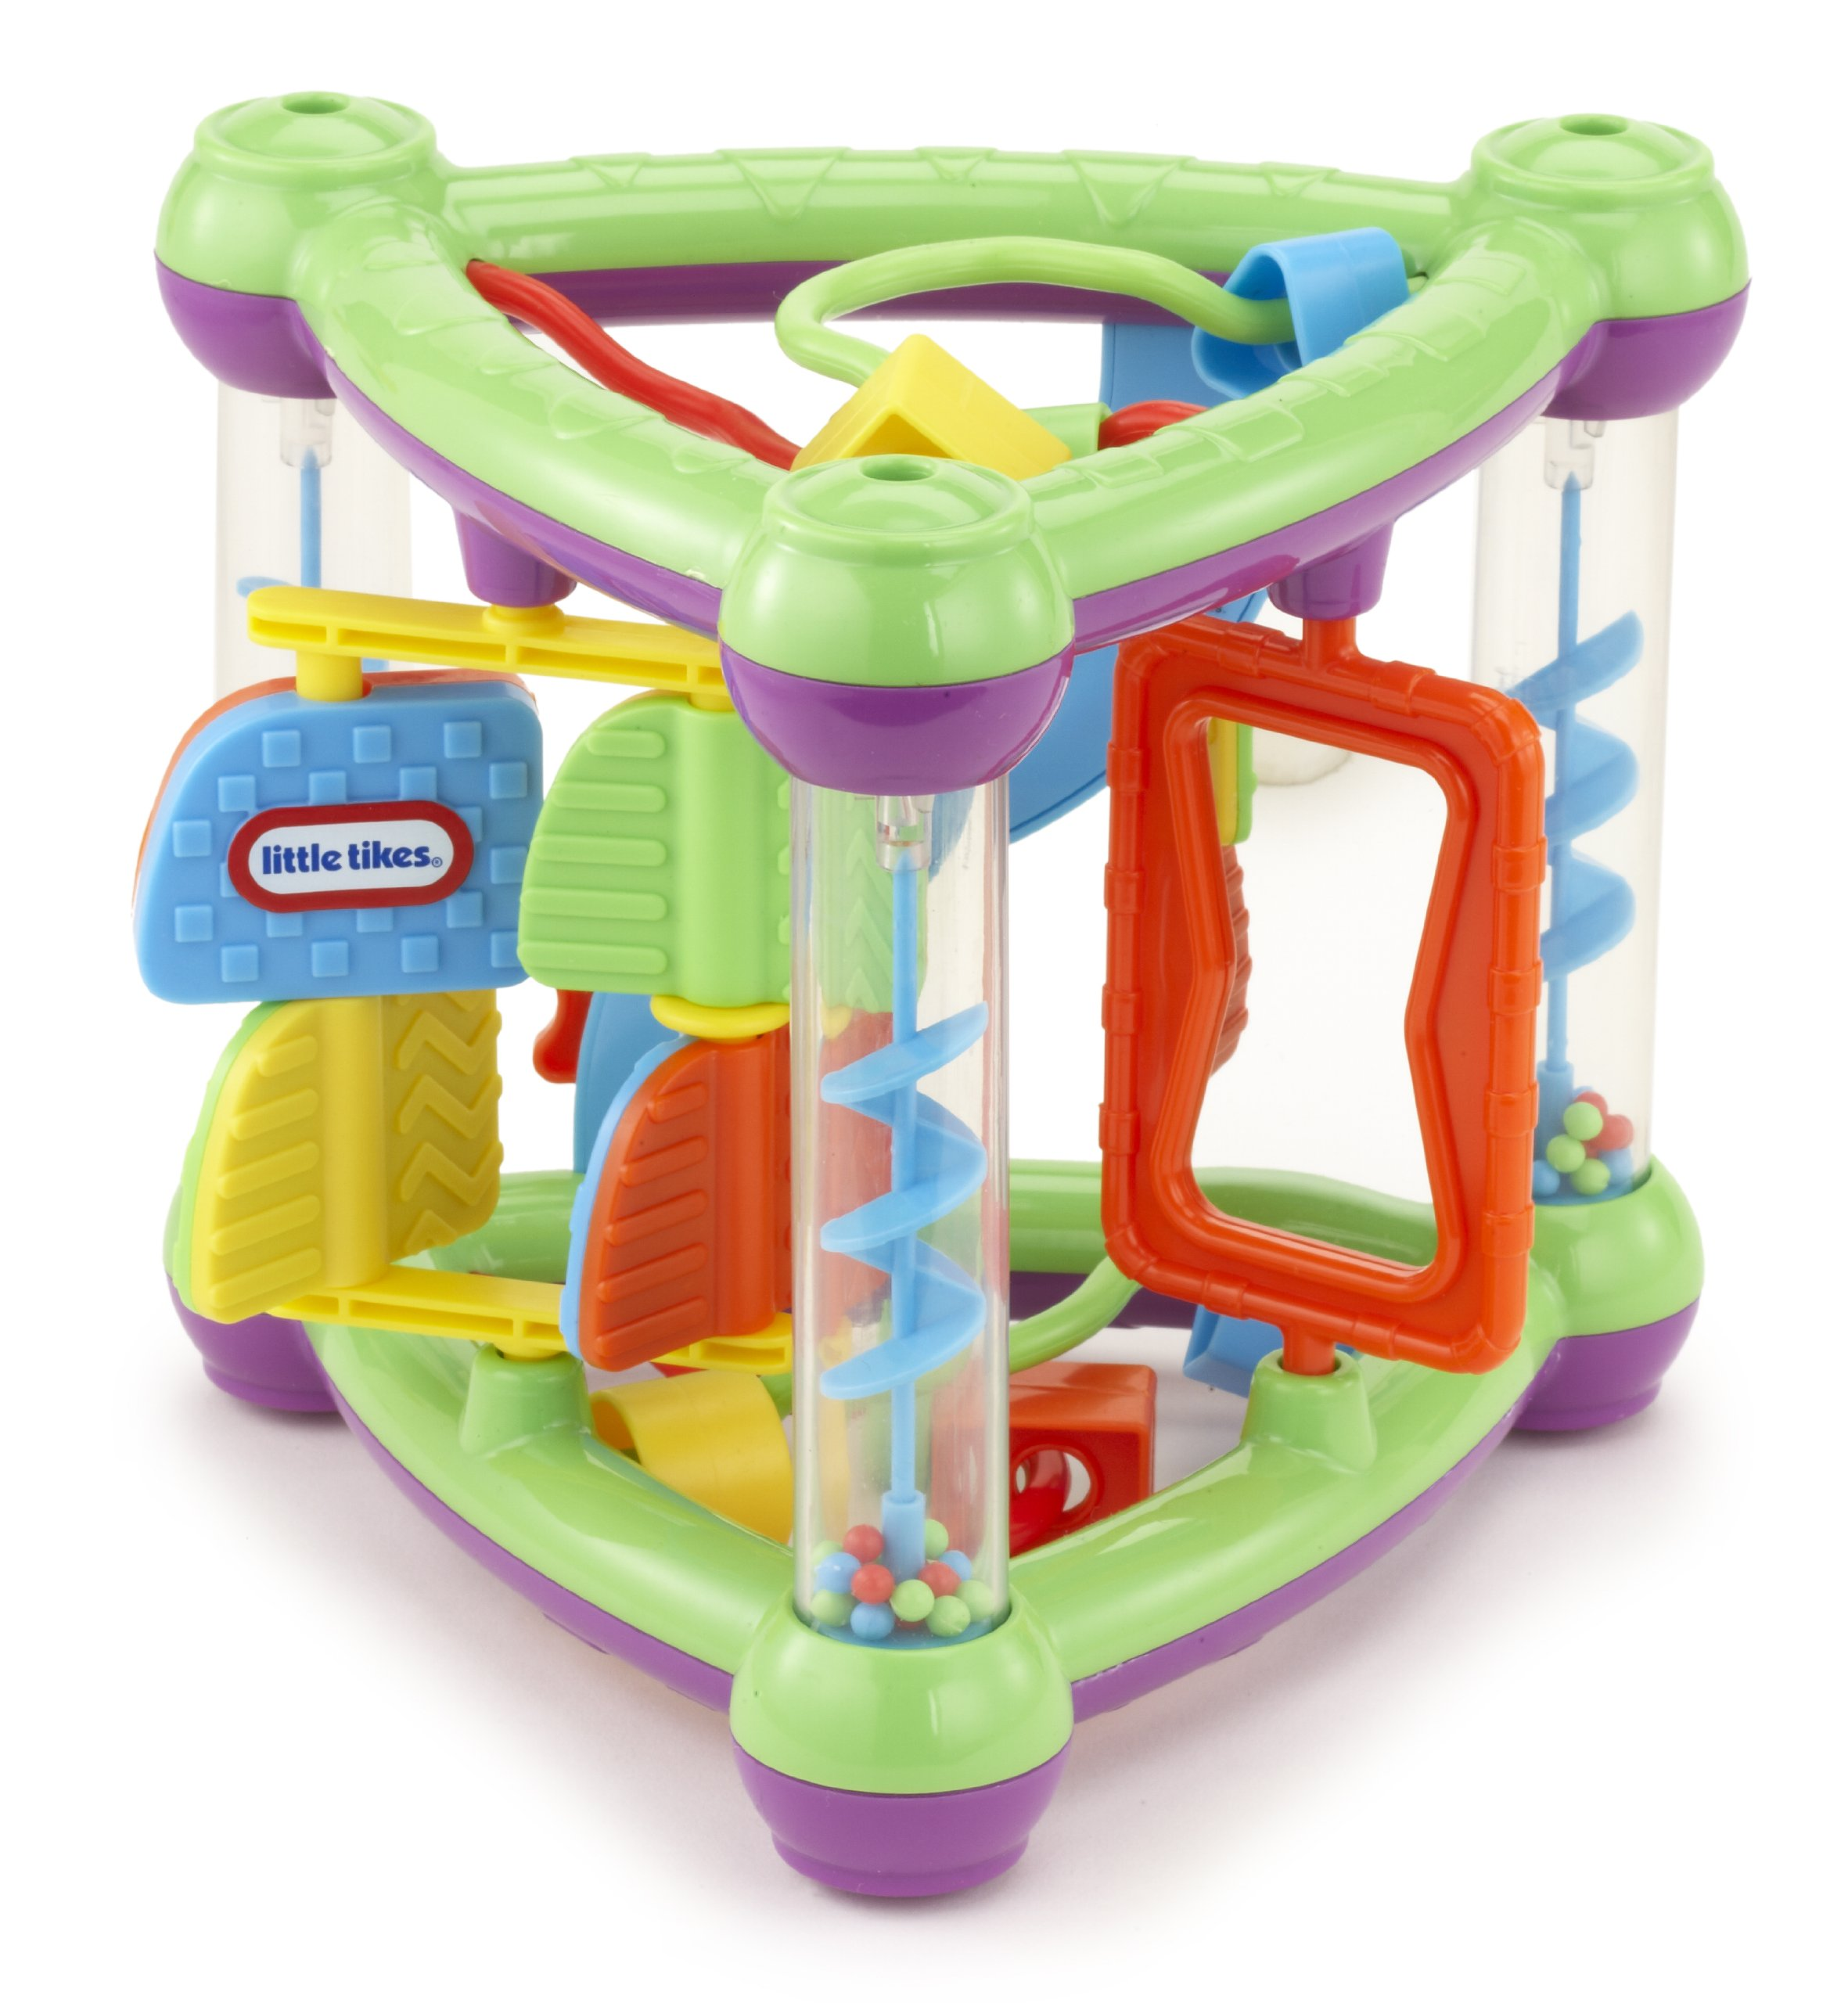 Little Tikes Play Triangle- Green/Purple by Little Tikes (Image #1)